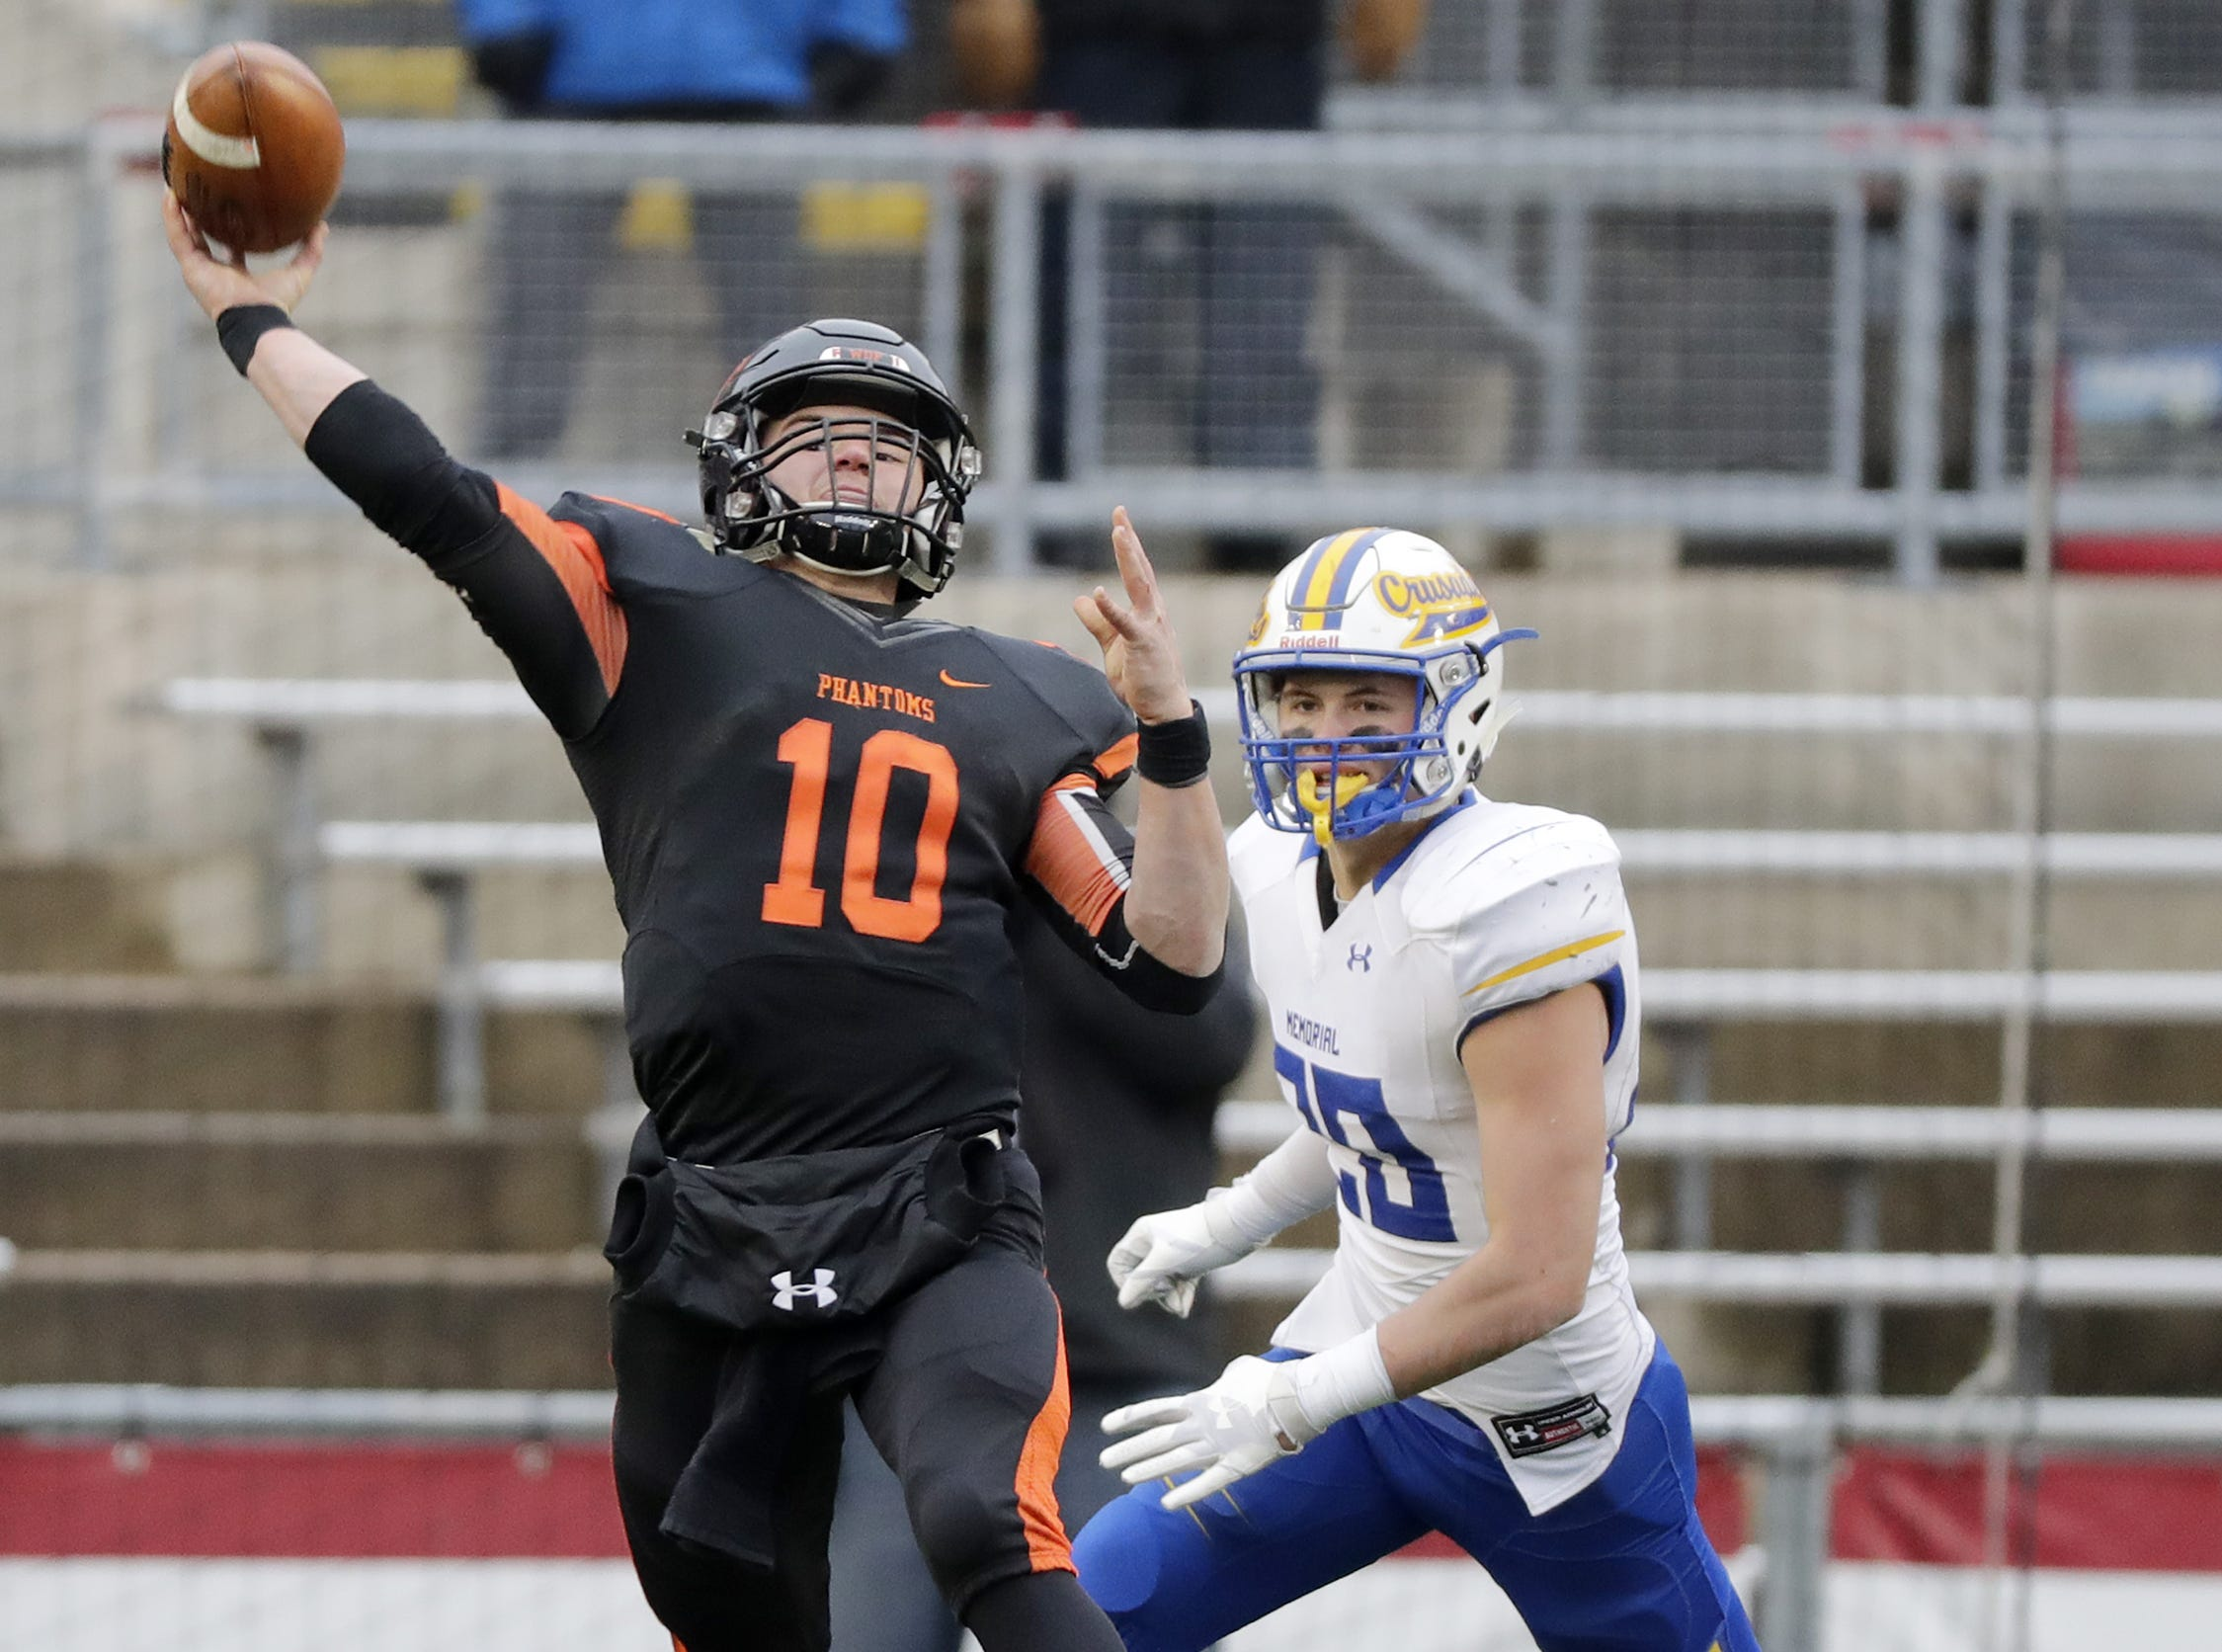 West De Pere's Josh Blount (10) throws under pressure in the fourth quarter against Catholic Memorial in the WIAA Division 3 championship game at Camp Randall Stadium on Friday, November 16, 2018 in Madison, Wis.